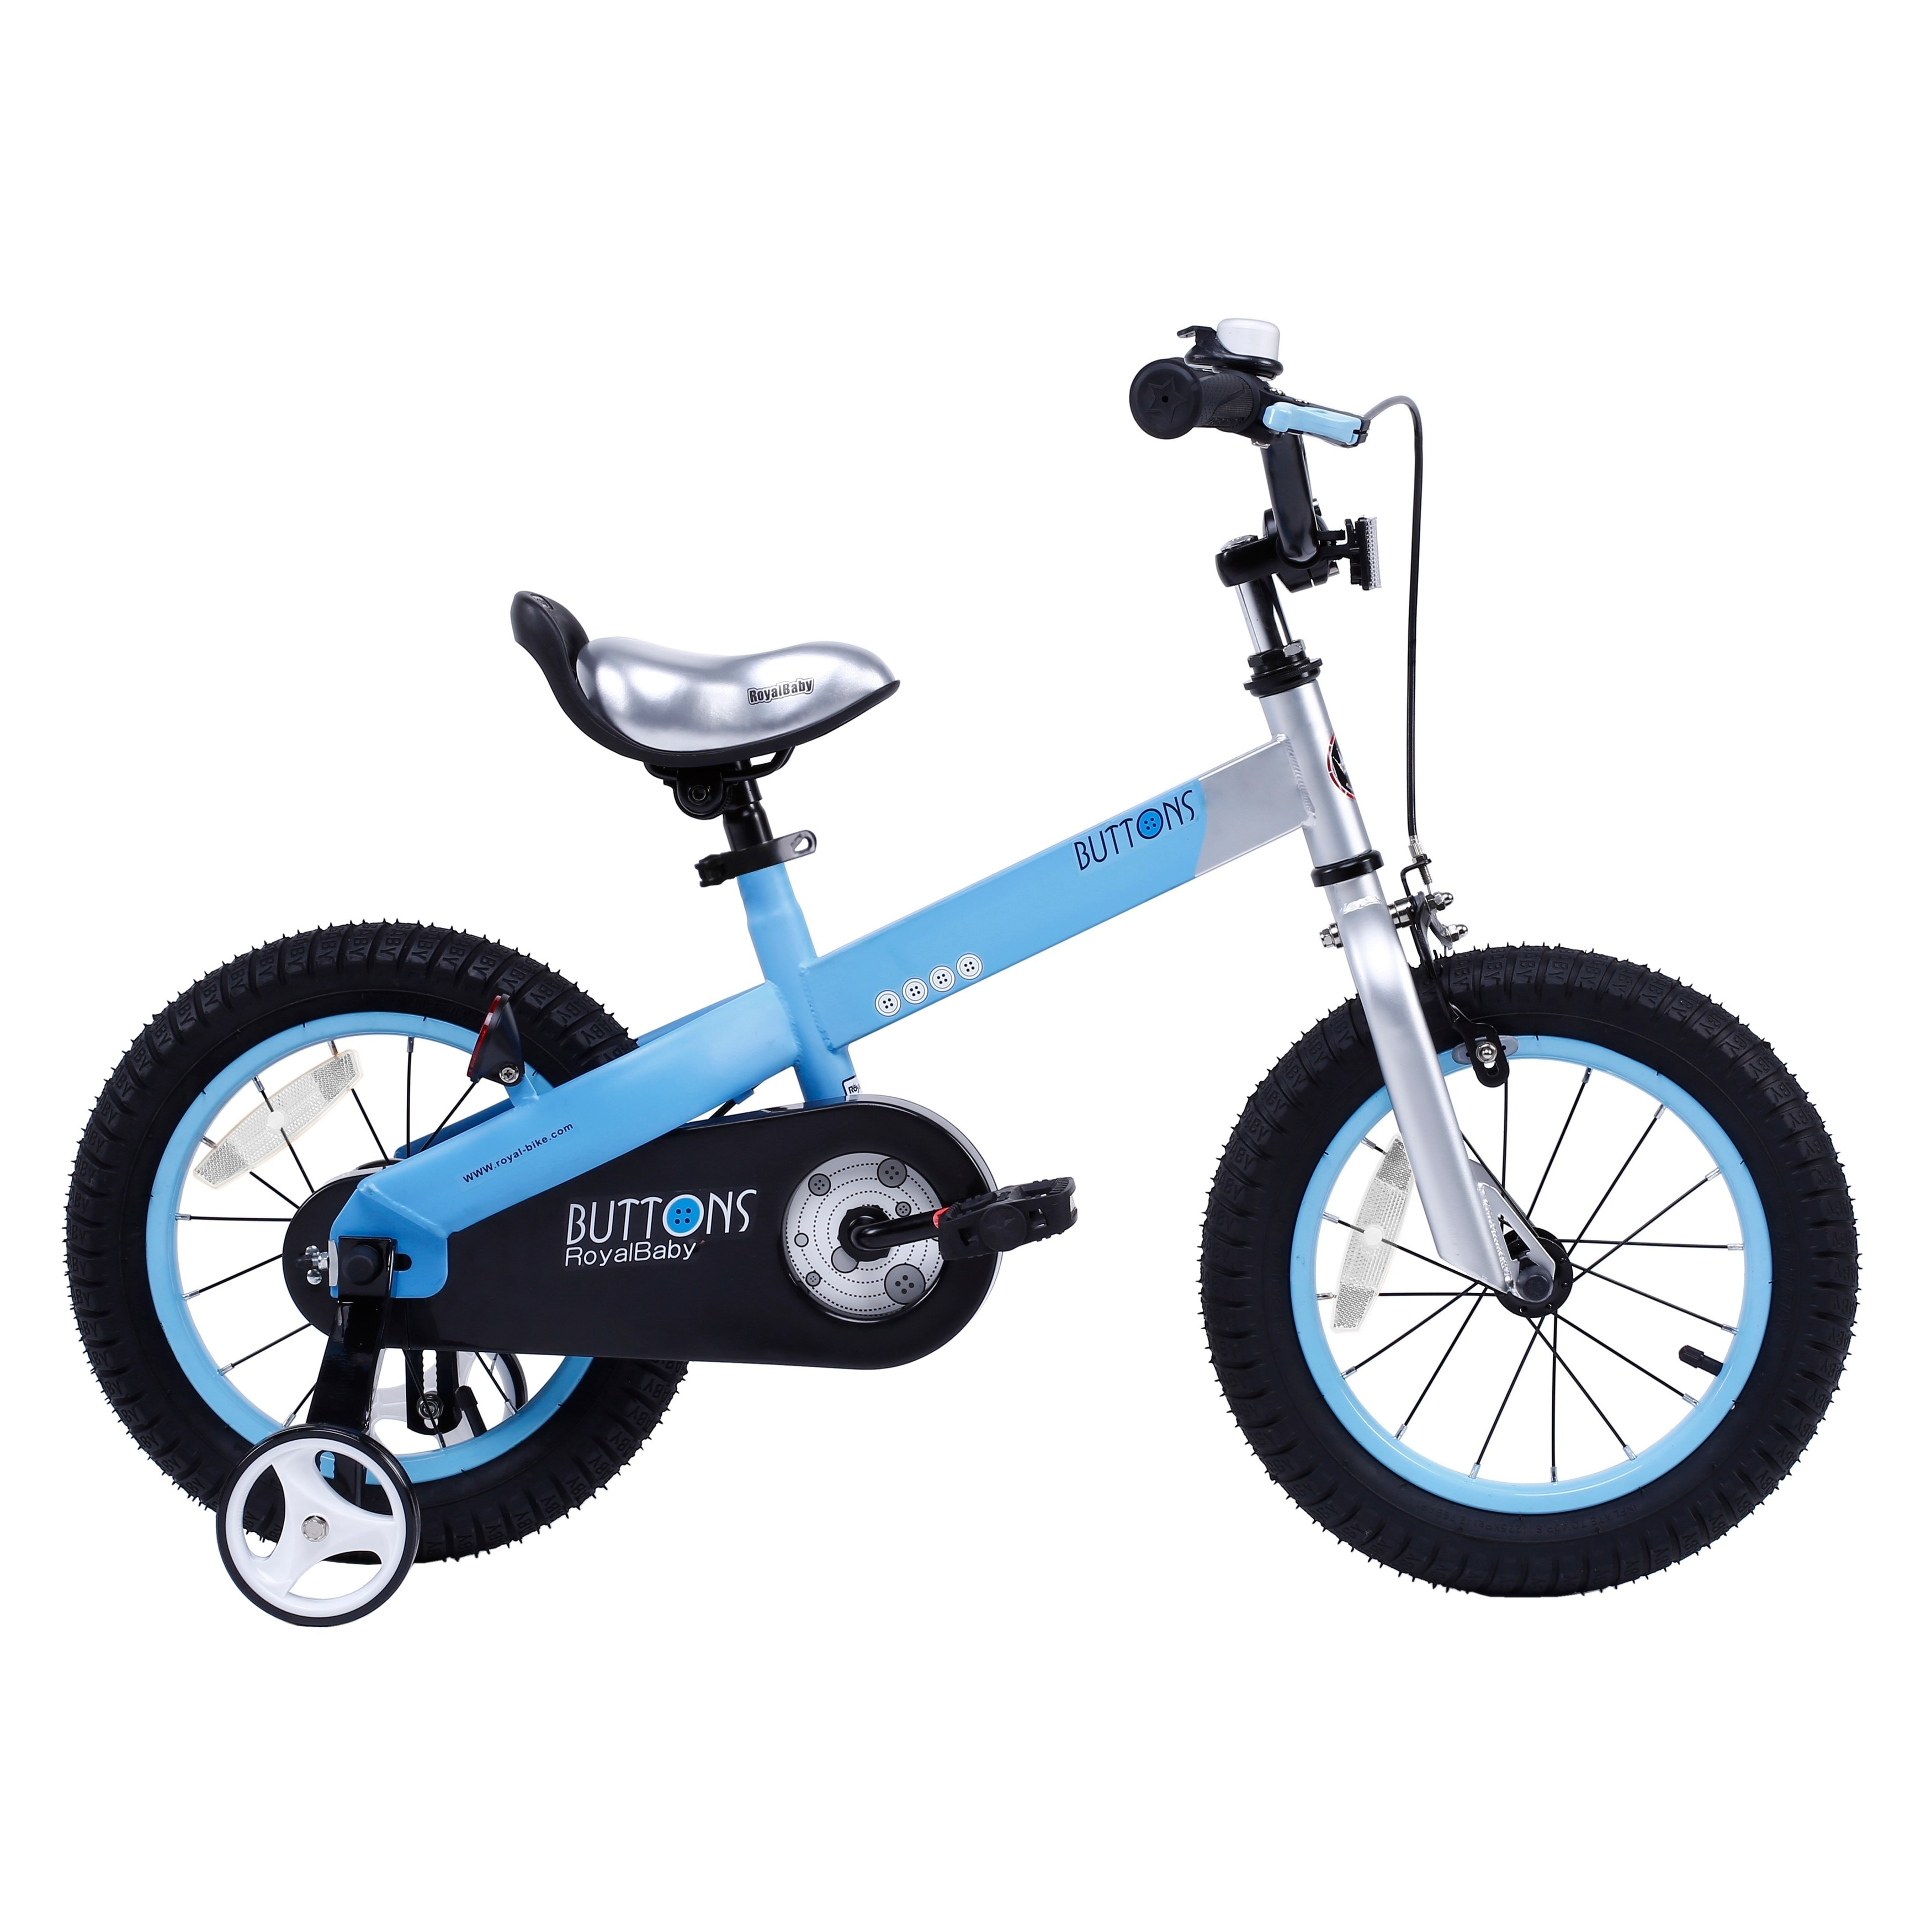 Royalbaby Matte Buttons 14-inch Kids' Bike with Training ...